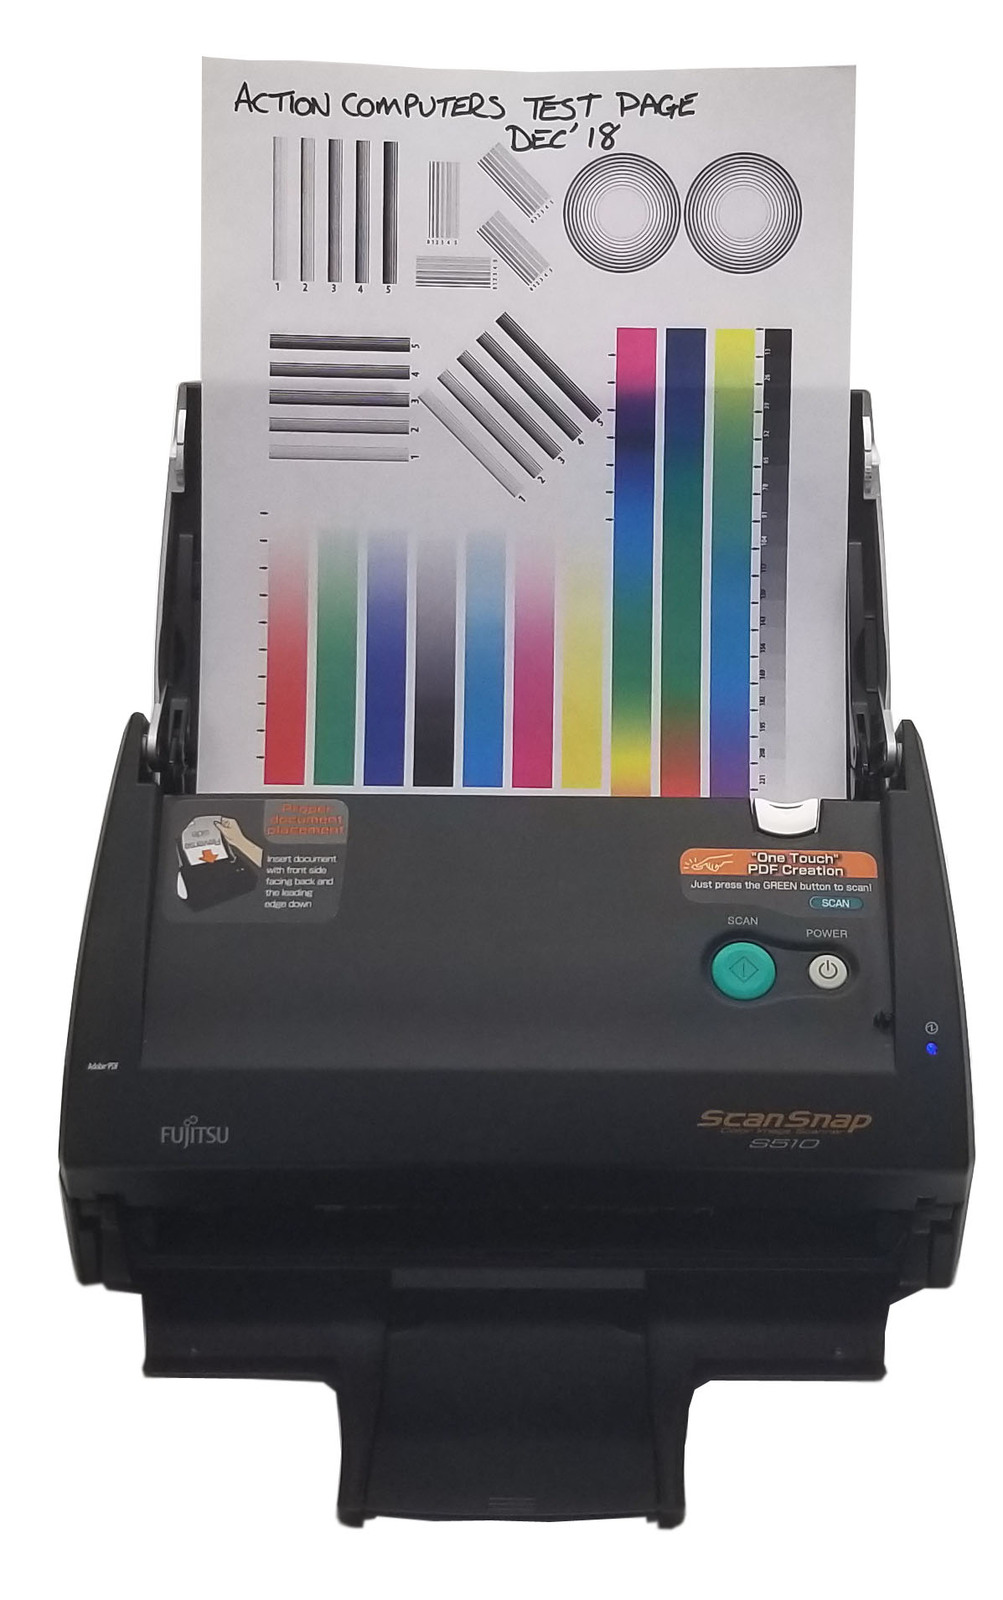 Fujitsu One Touch Scan Snap Color Scanner S510 With A/C Adapter and USB Bin:9